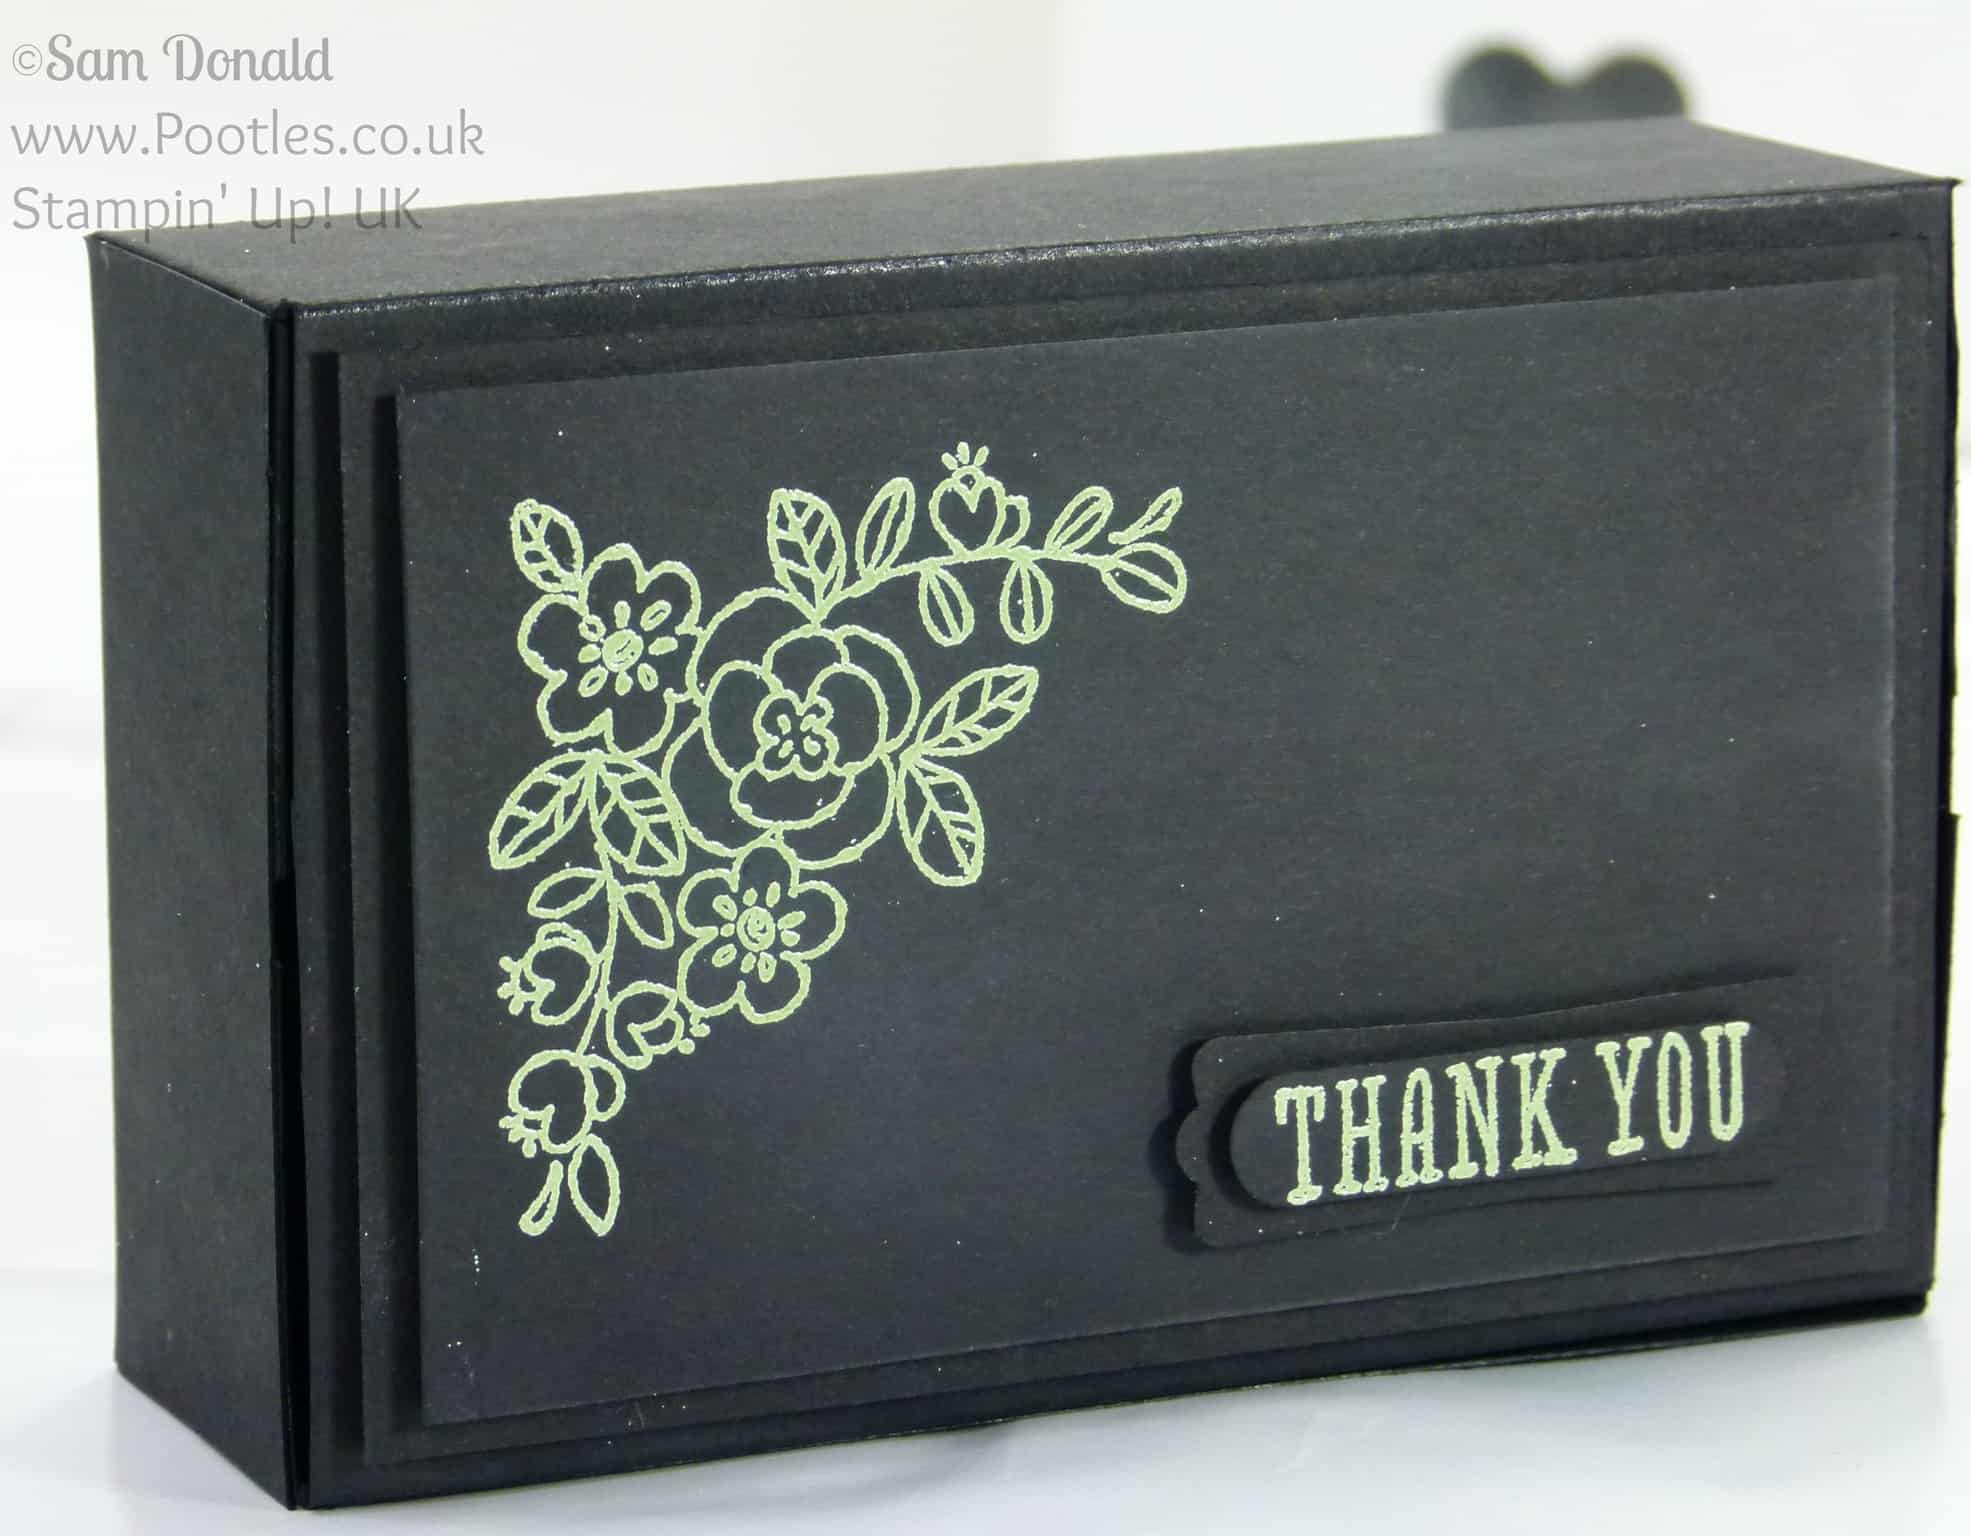 POOTLES Stampin' Up! UK Independent Demonstrator - Heat Embossed Stylish Box Tutorial using Stampin' Up! supplies Wild Wasabit